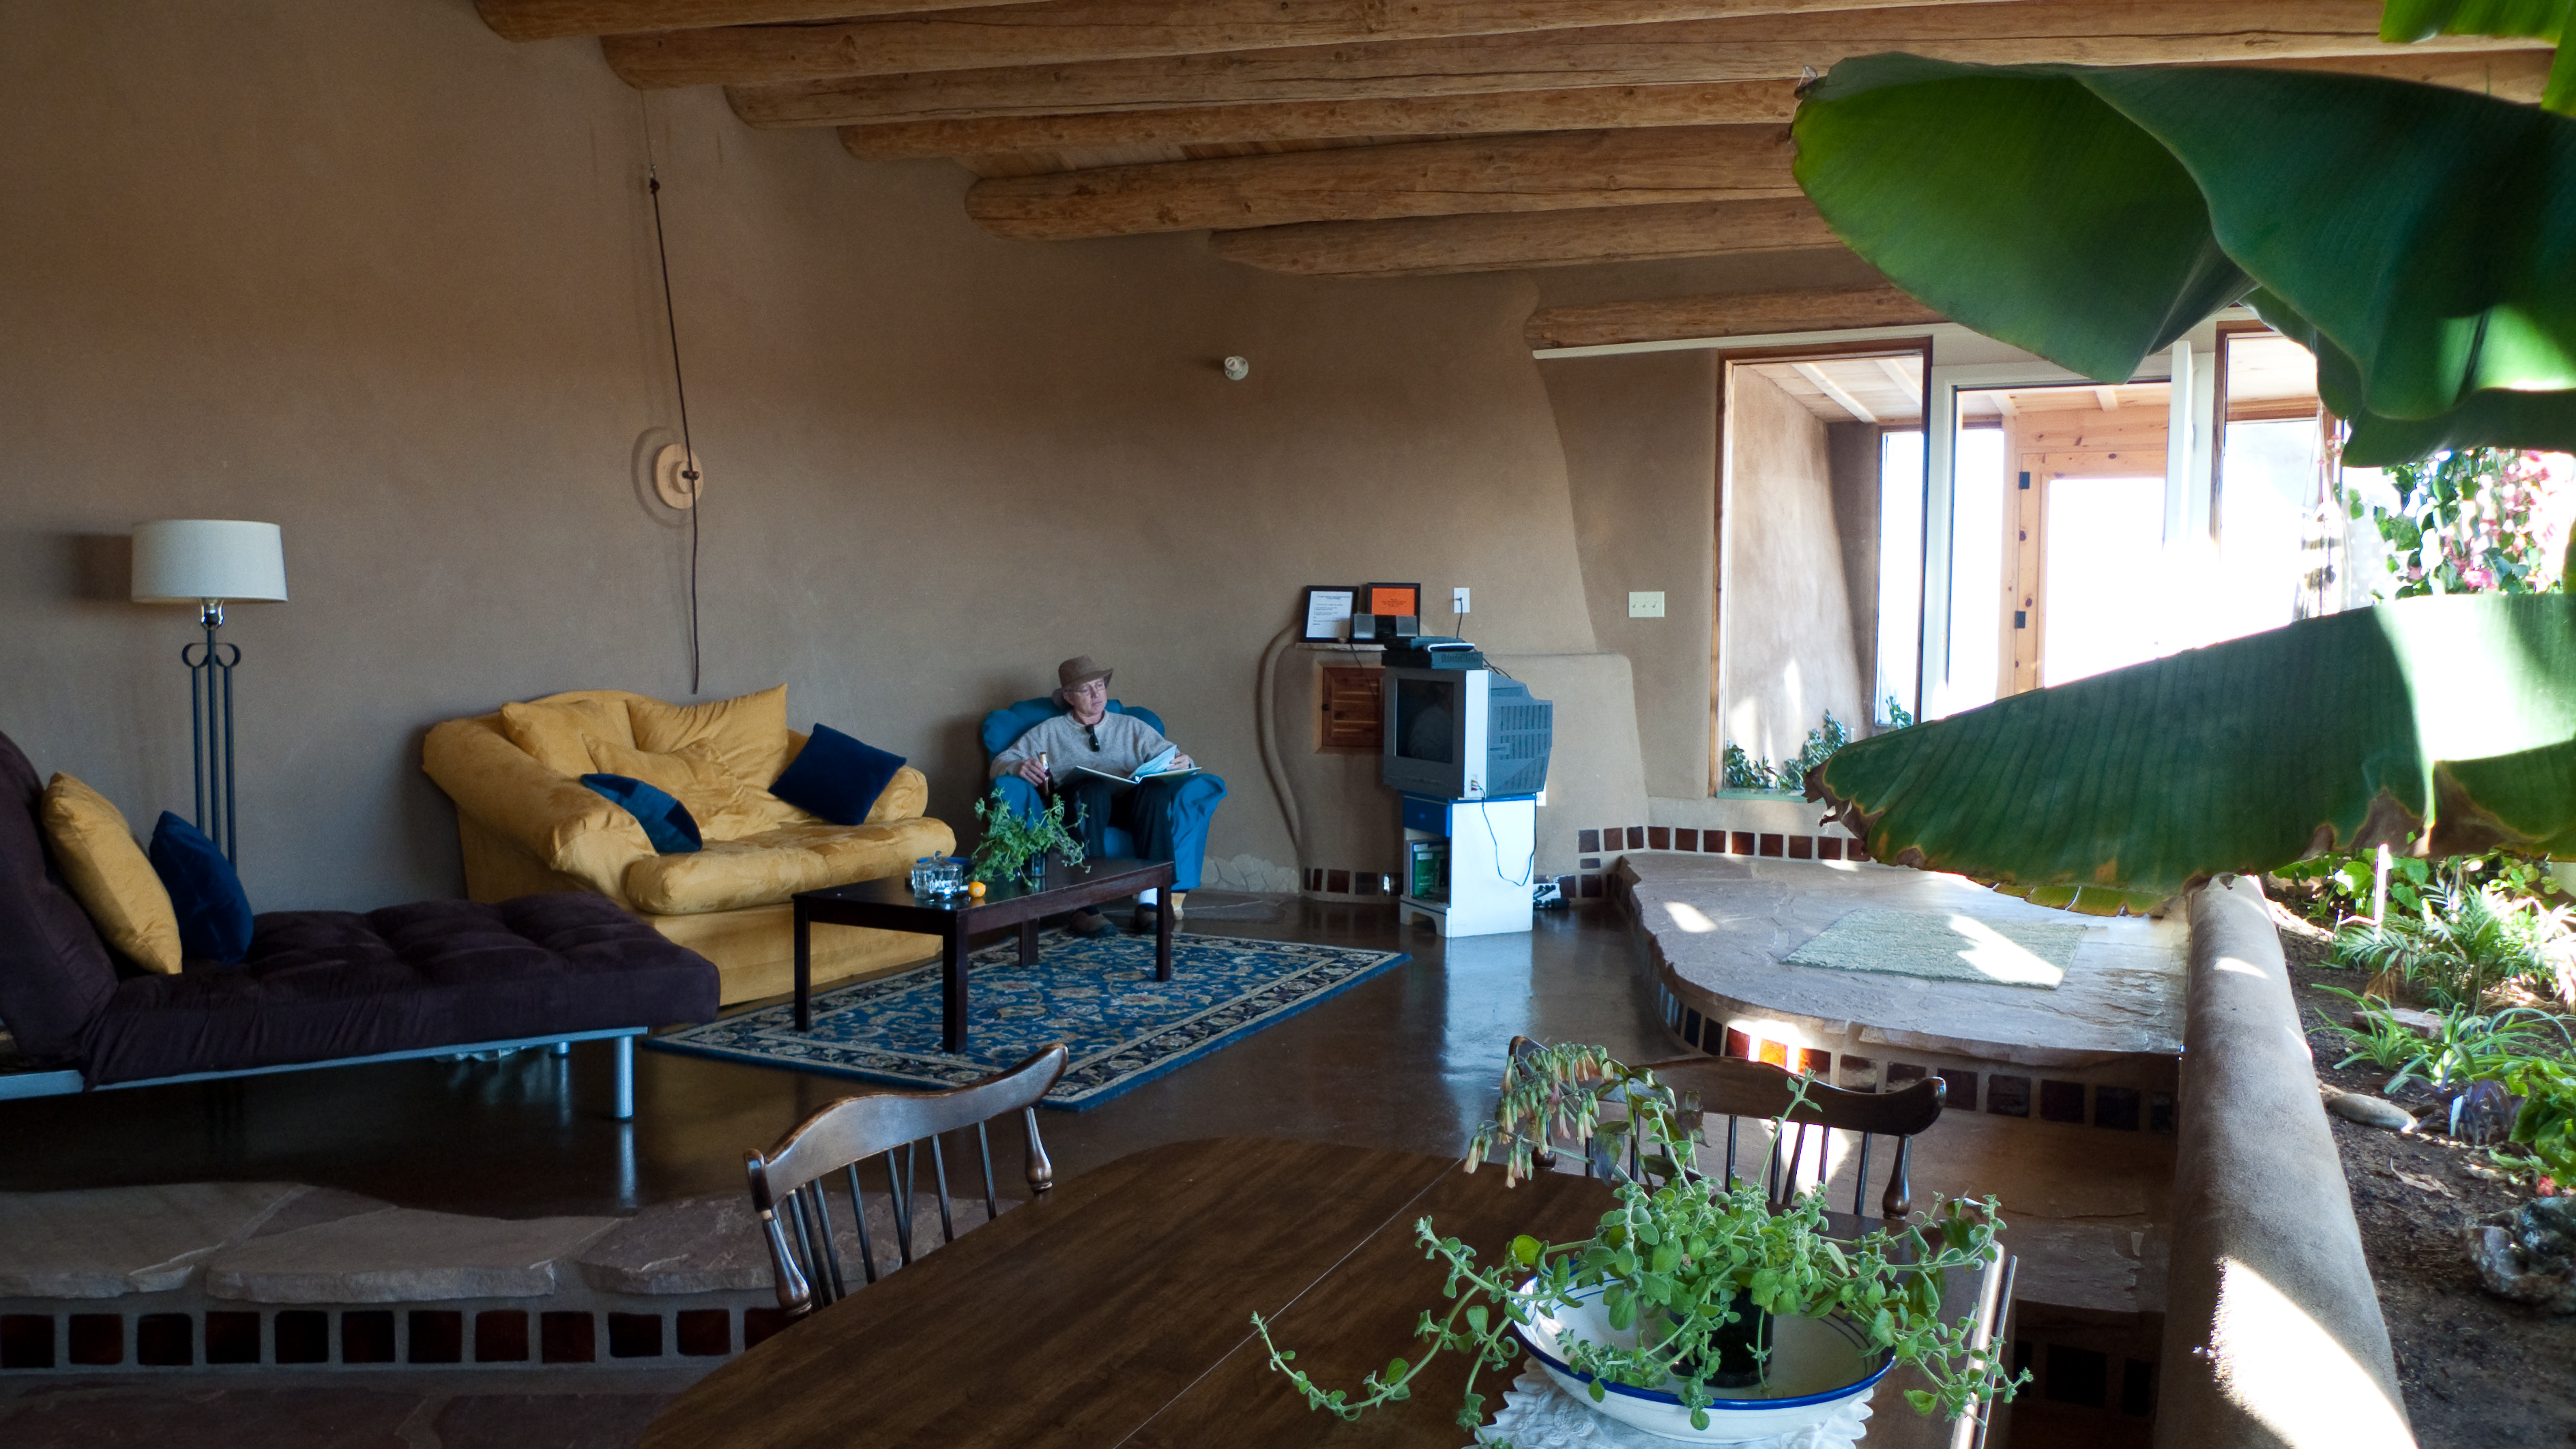 Humble Earthship Living Room With Lot Of Plants 3 776 X 2 124